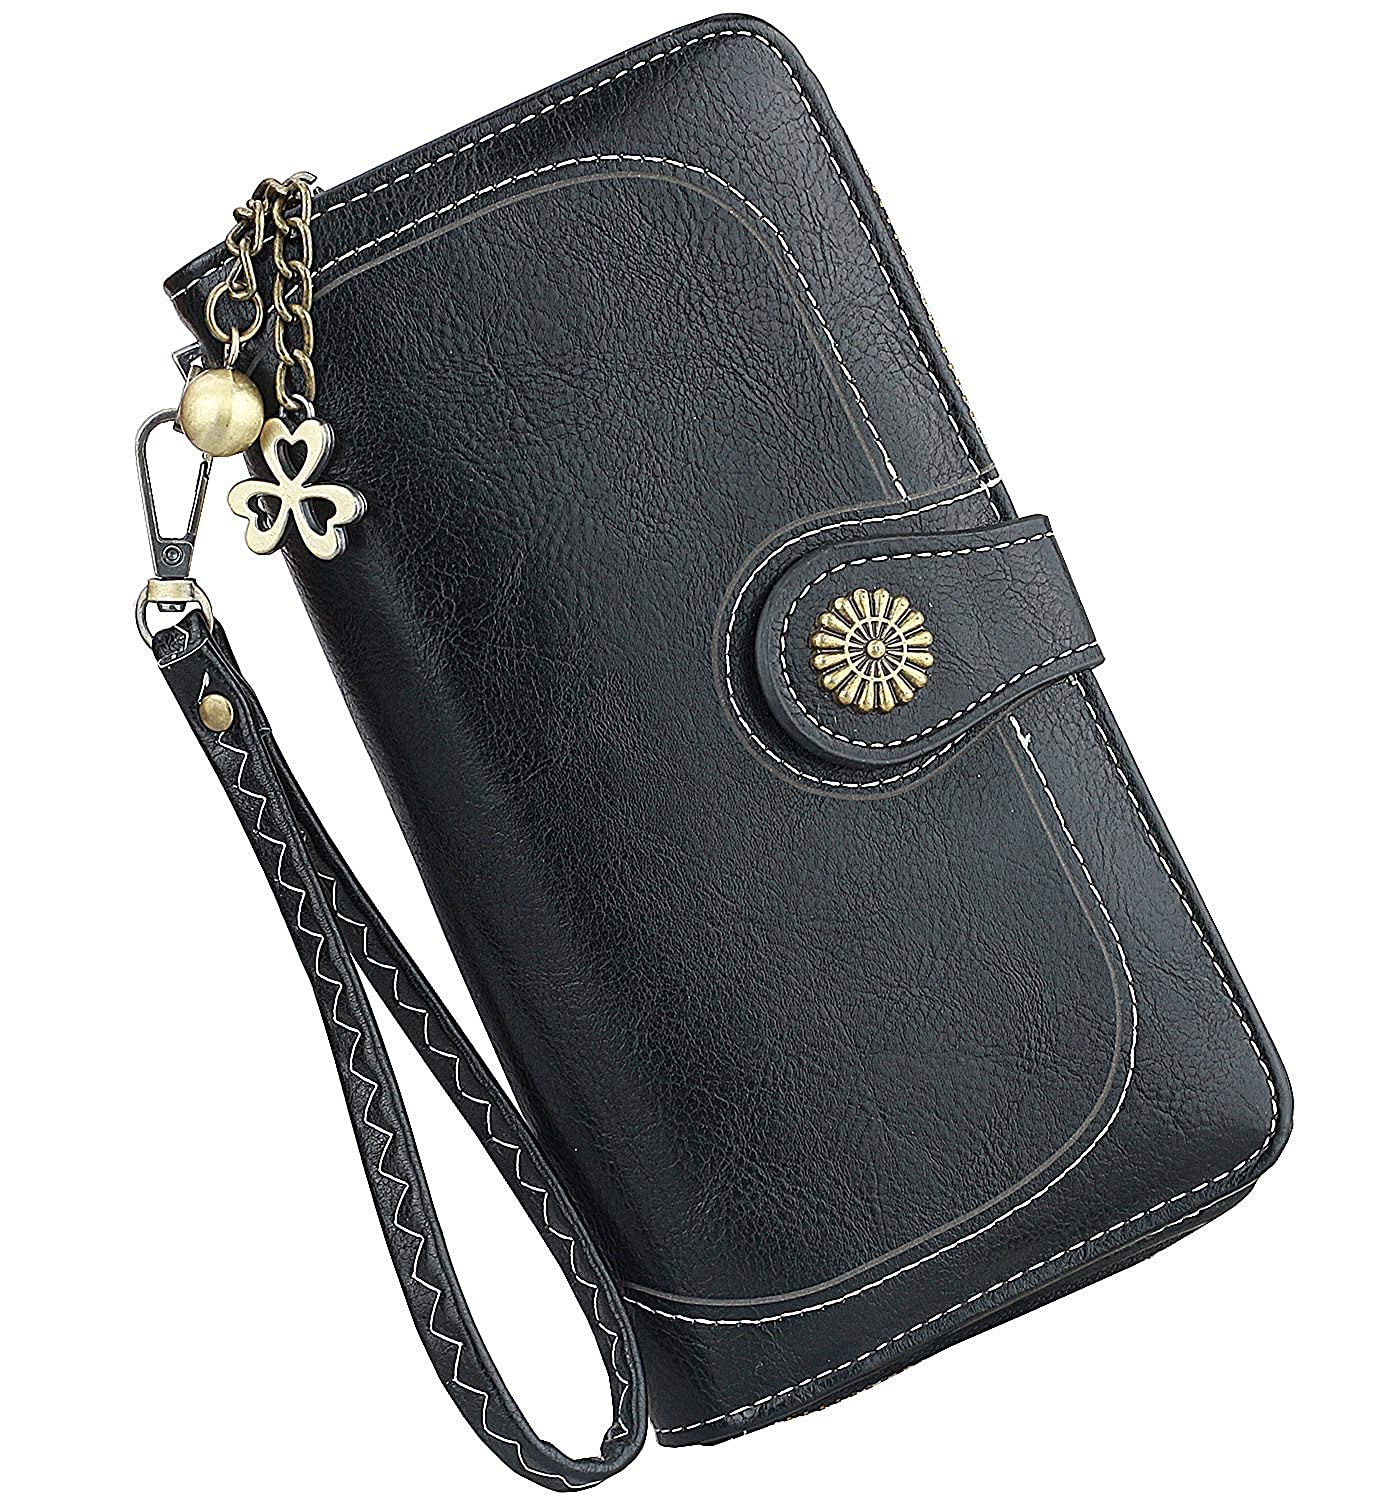 fe41e170ad08 Women Wallets,Vintage Ladies PU Leather Wallets,Long Trifold Clutch Travel  Purse, Large Capacity Zipper Wallet